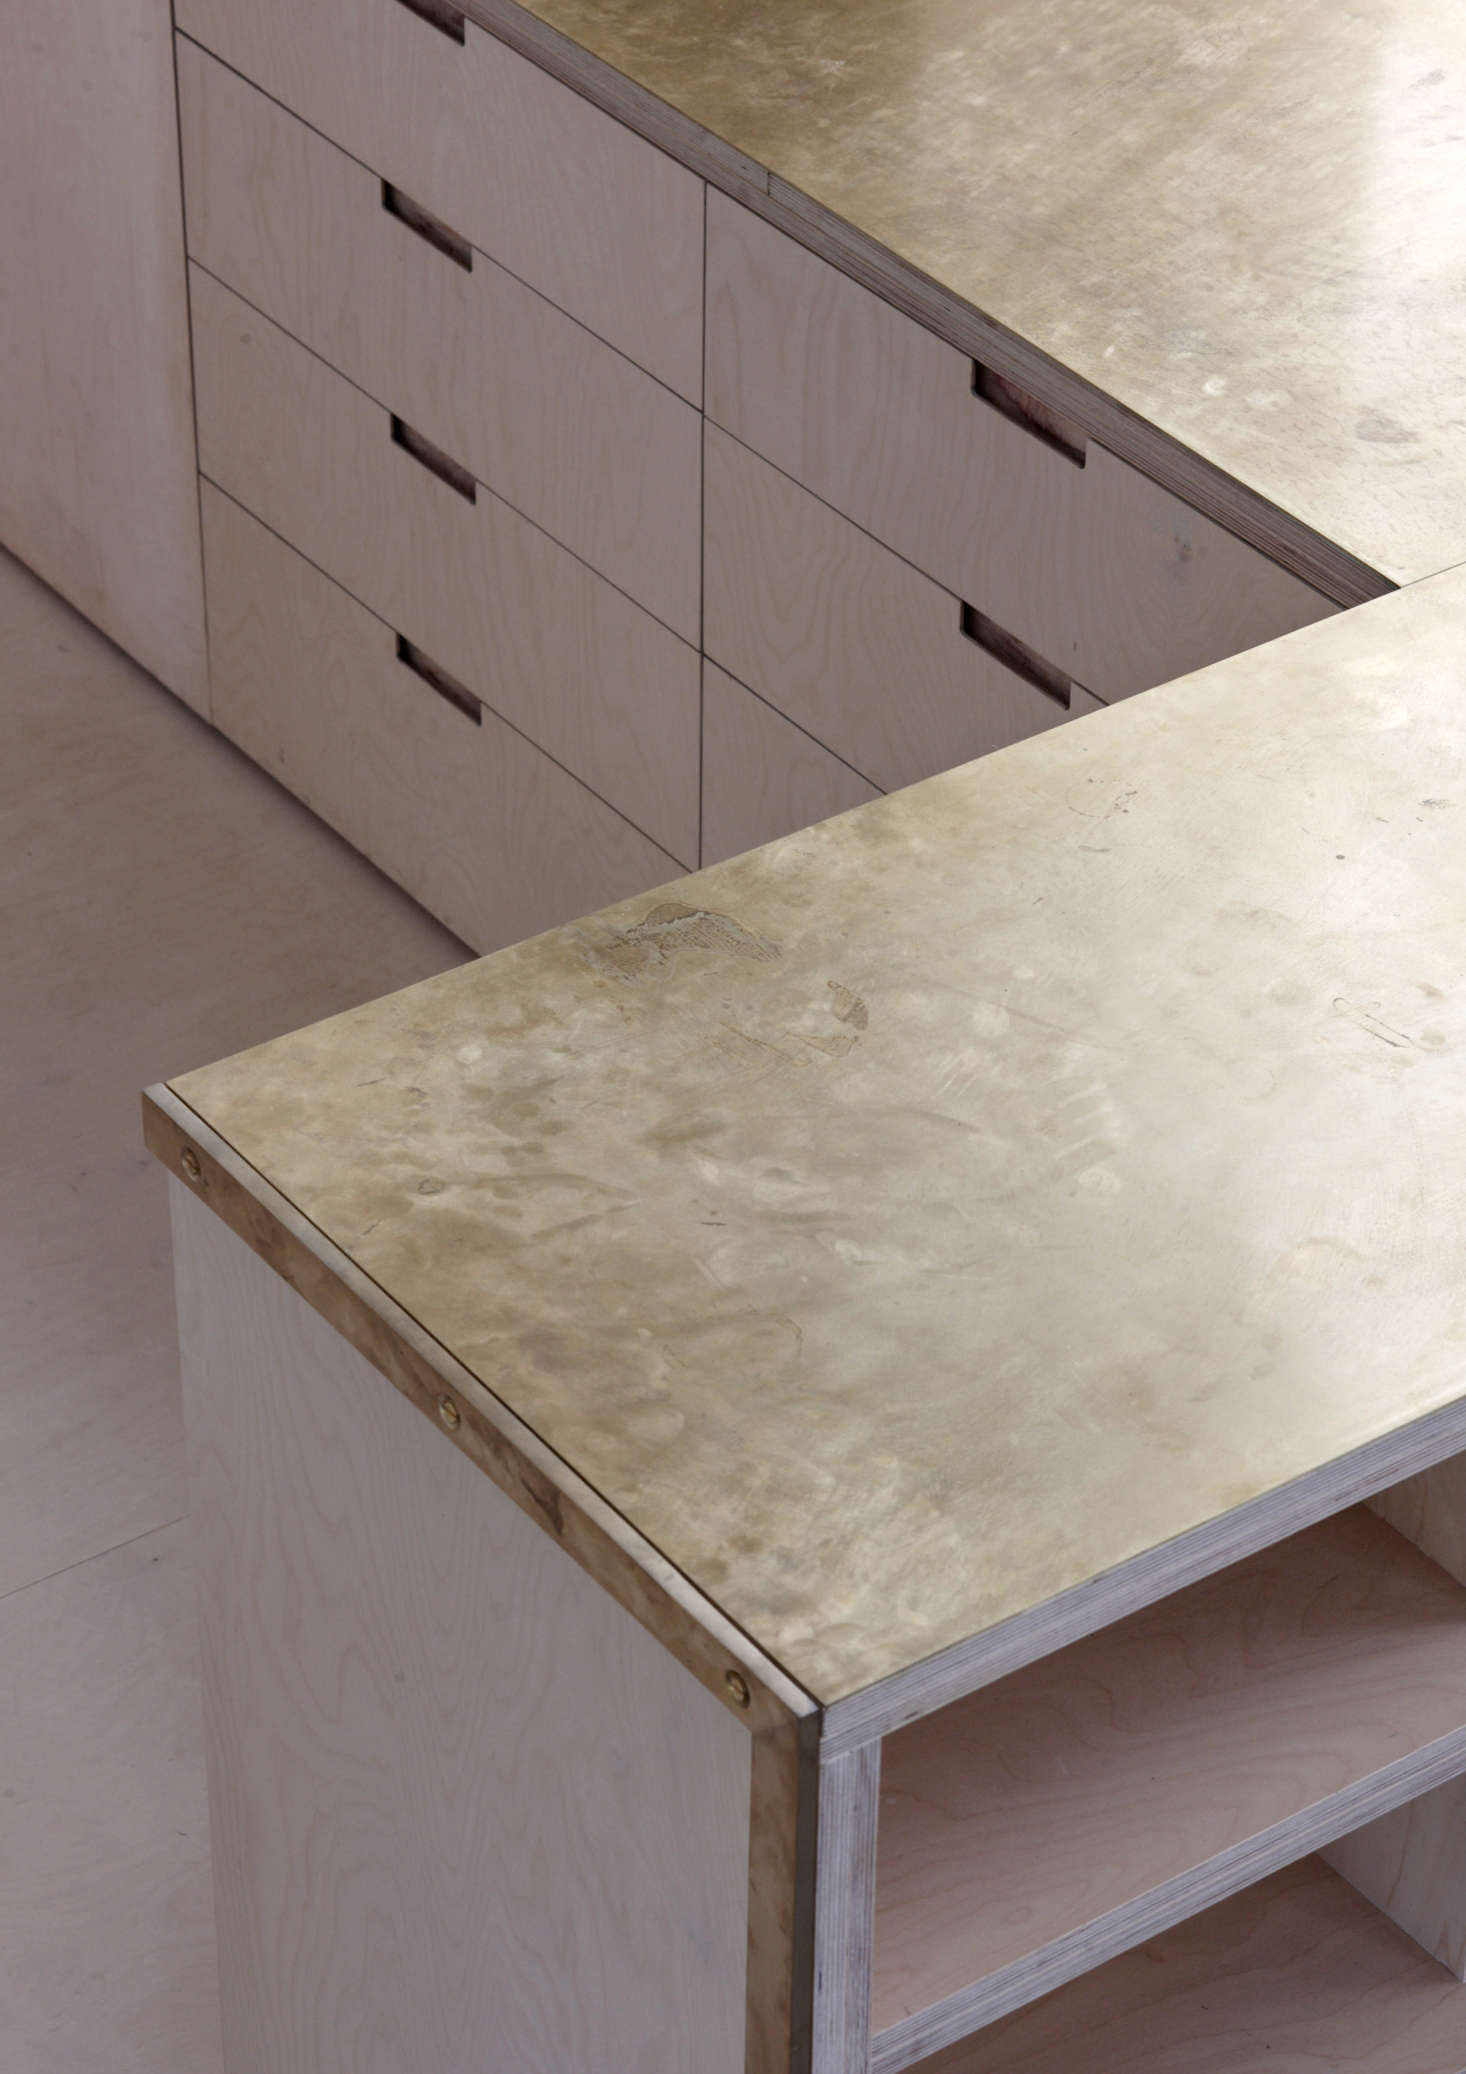 The counters(two layers of 18mm birch ply bonded with twomillimeters of brass:total thickness 38 millimeters)are unlacquered and intended togather fingerprints and patina over time. Allmillwork was designed byMcLarenExcell and fabricatedlocally.